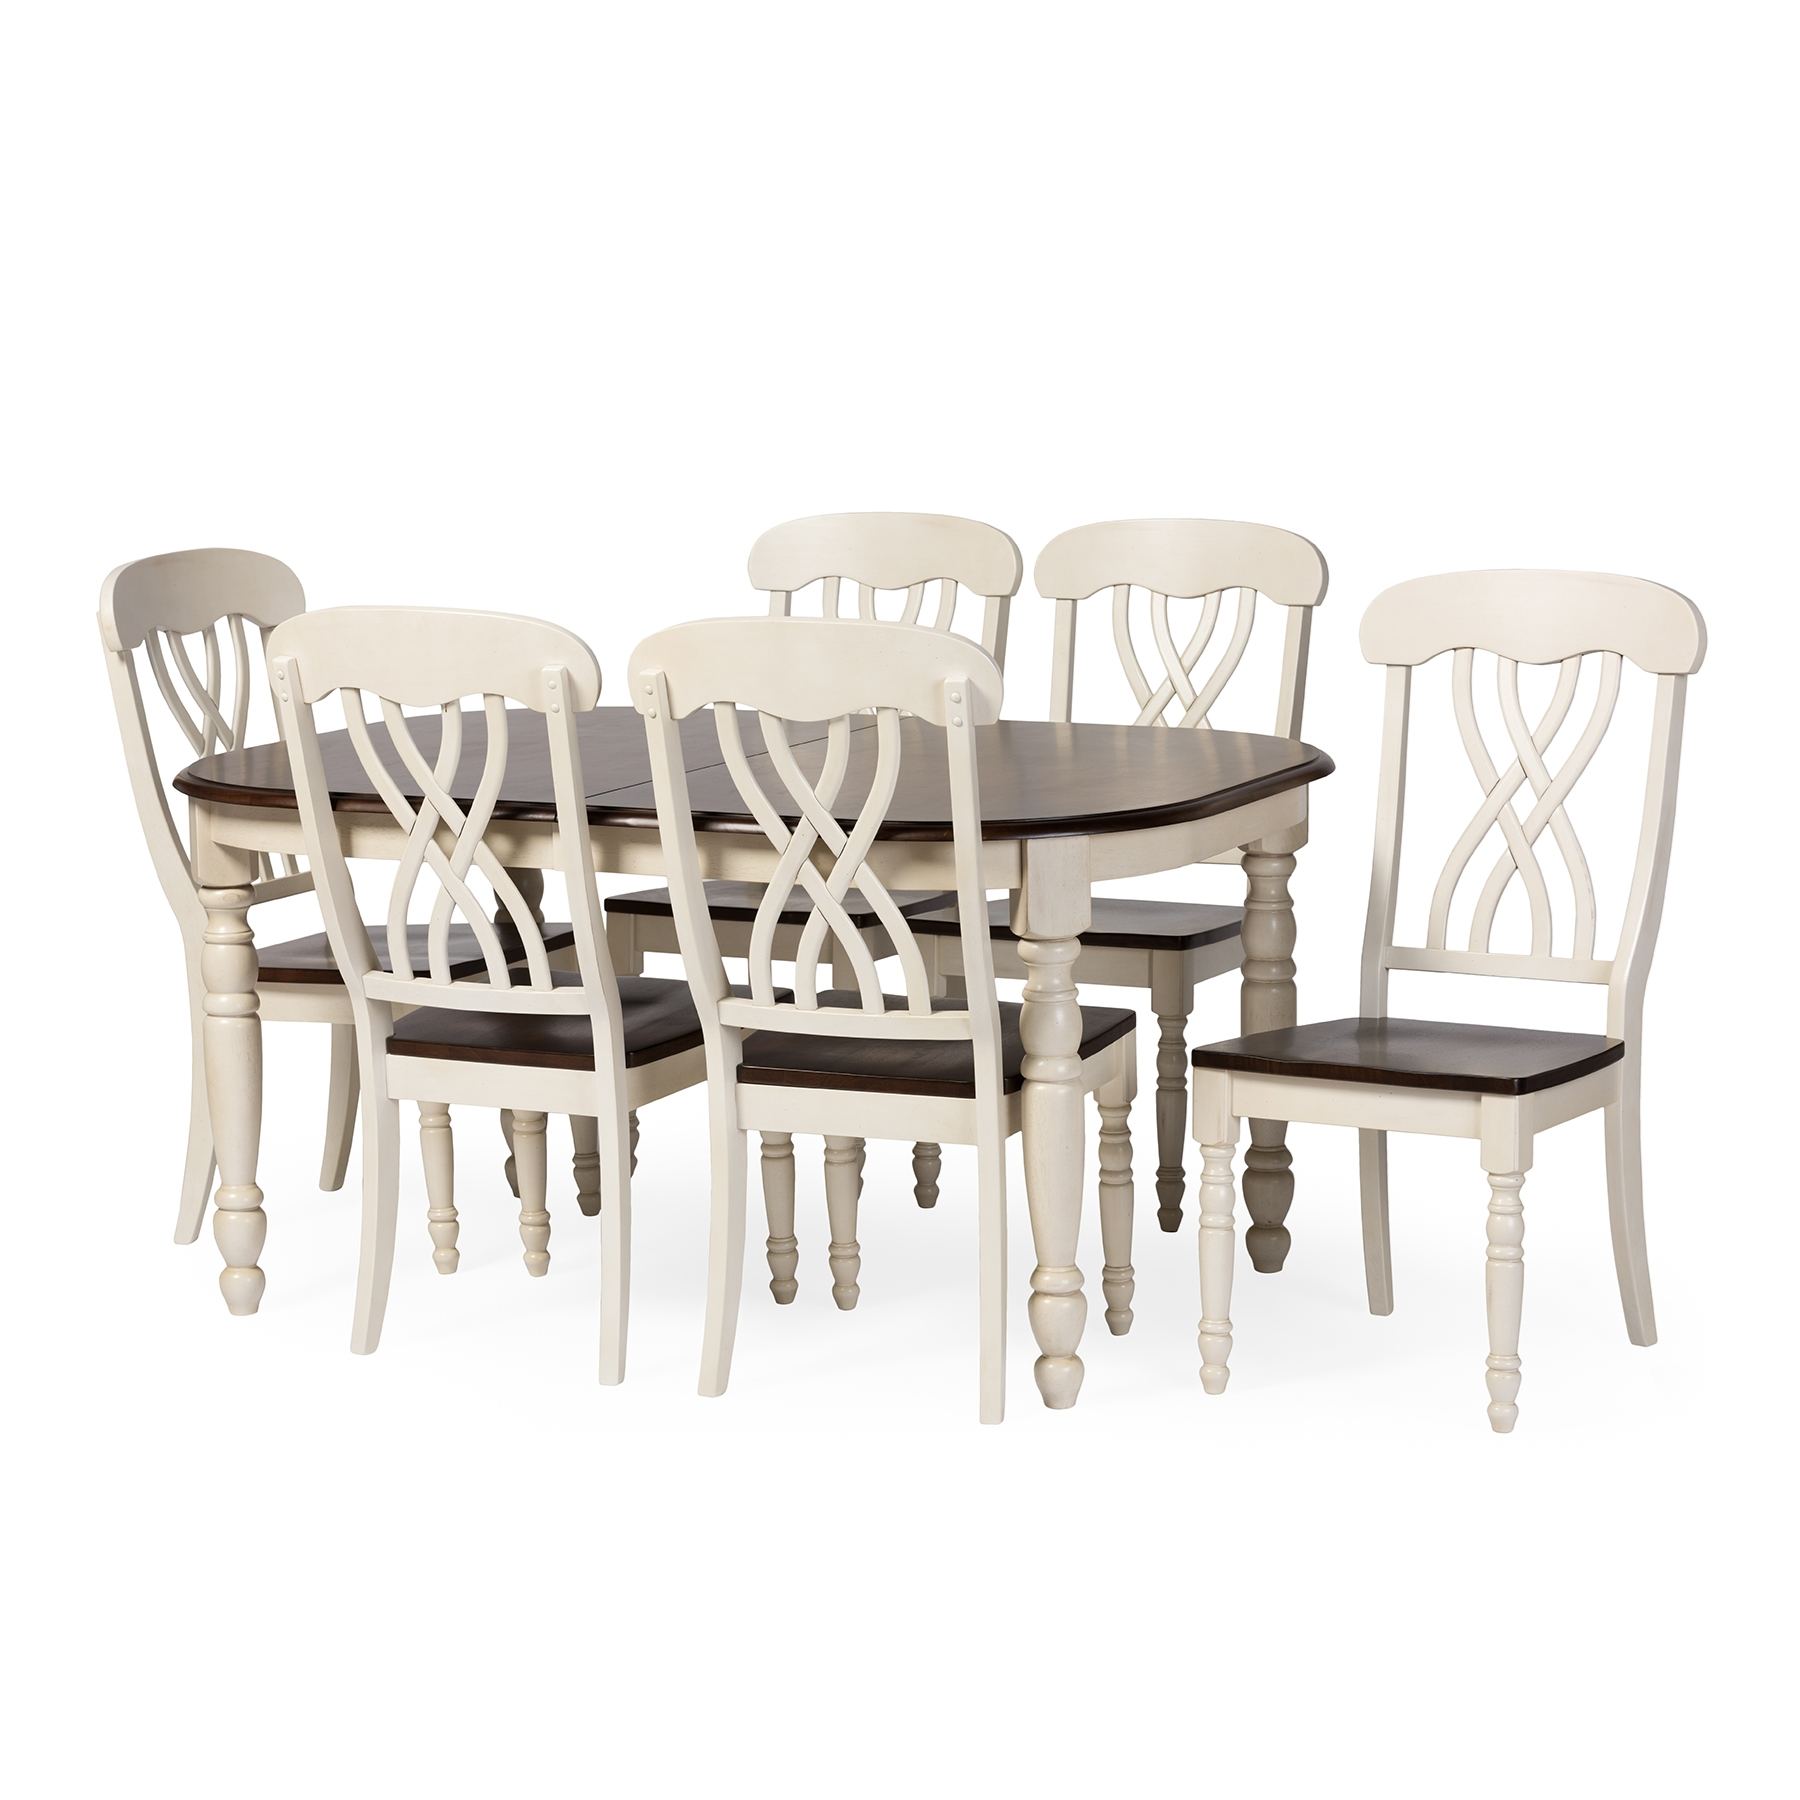 Charmant Baxton Studio Newman Chic Country Cottage Antique Oak Wood And Distressed White  7 Piece Dining ...